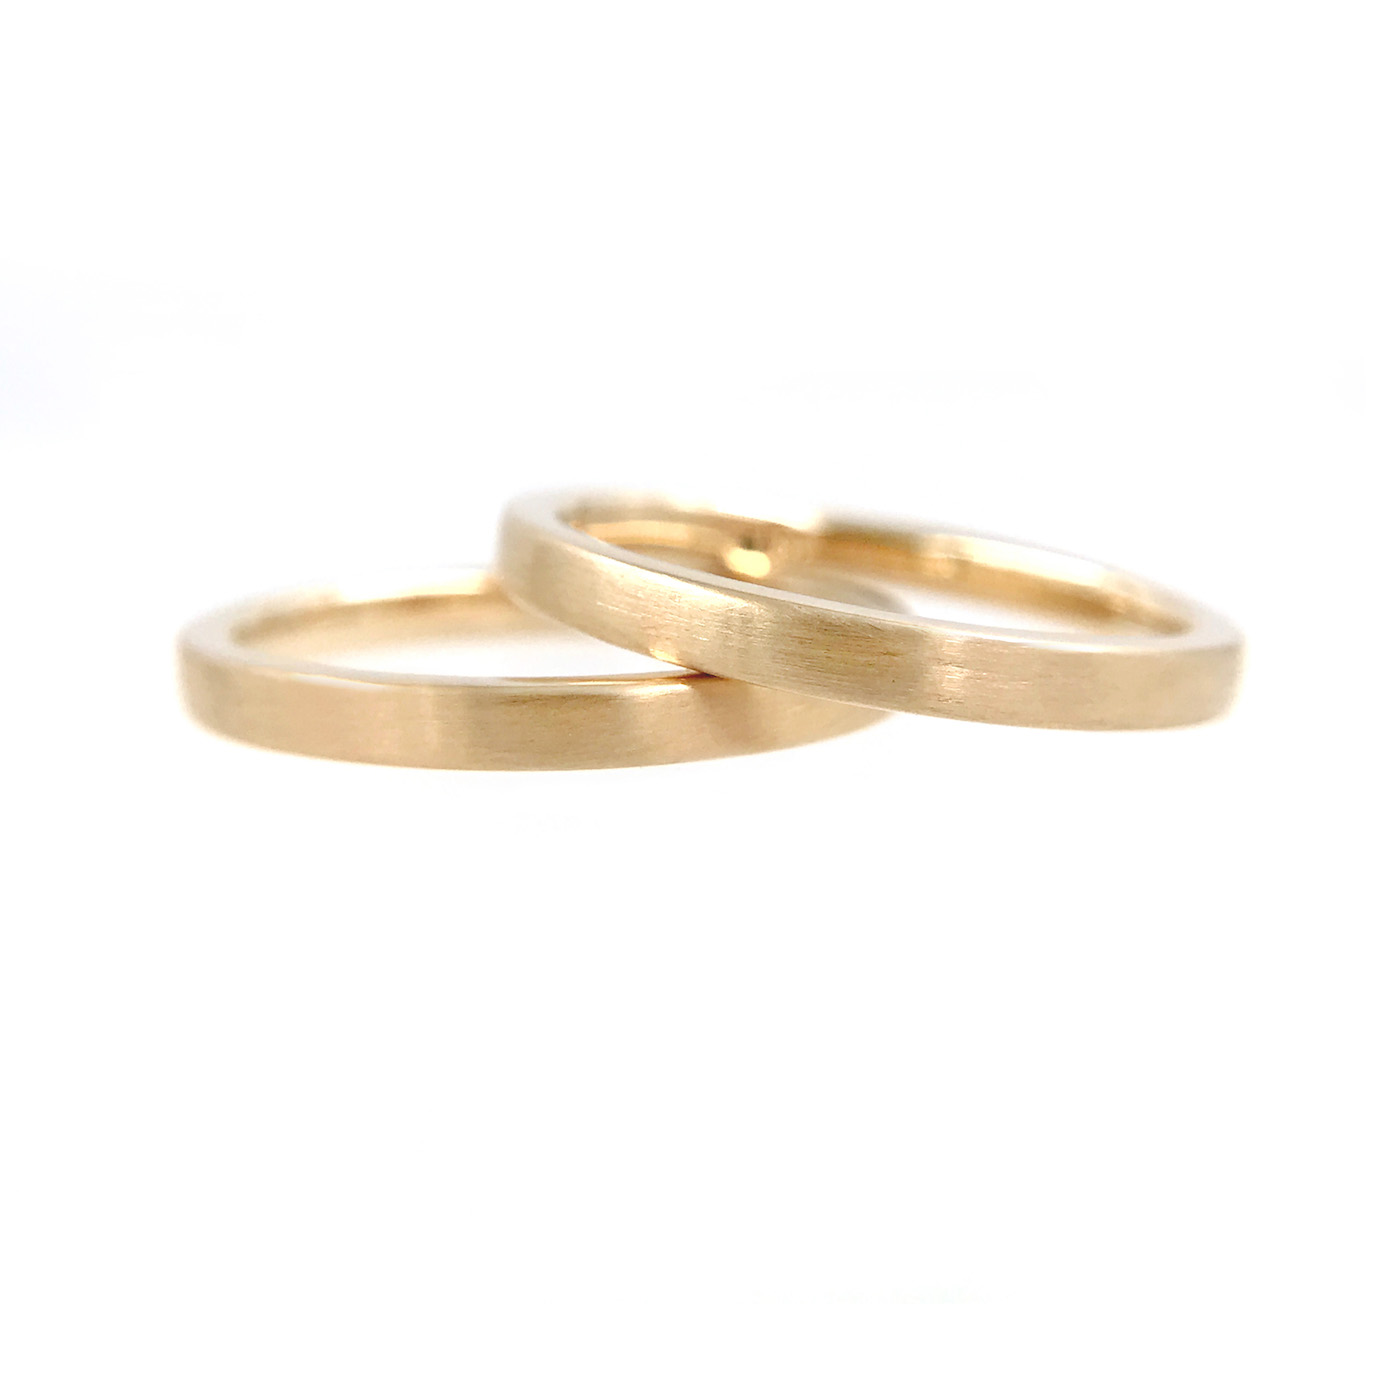 44Chic-square-2mm-Satin-Gold-Band-Ring-Guard-Spacer-14k-18k_7816